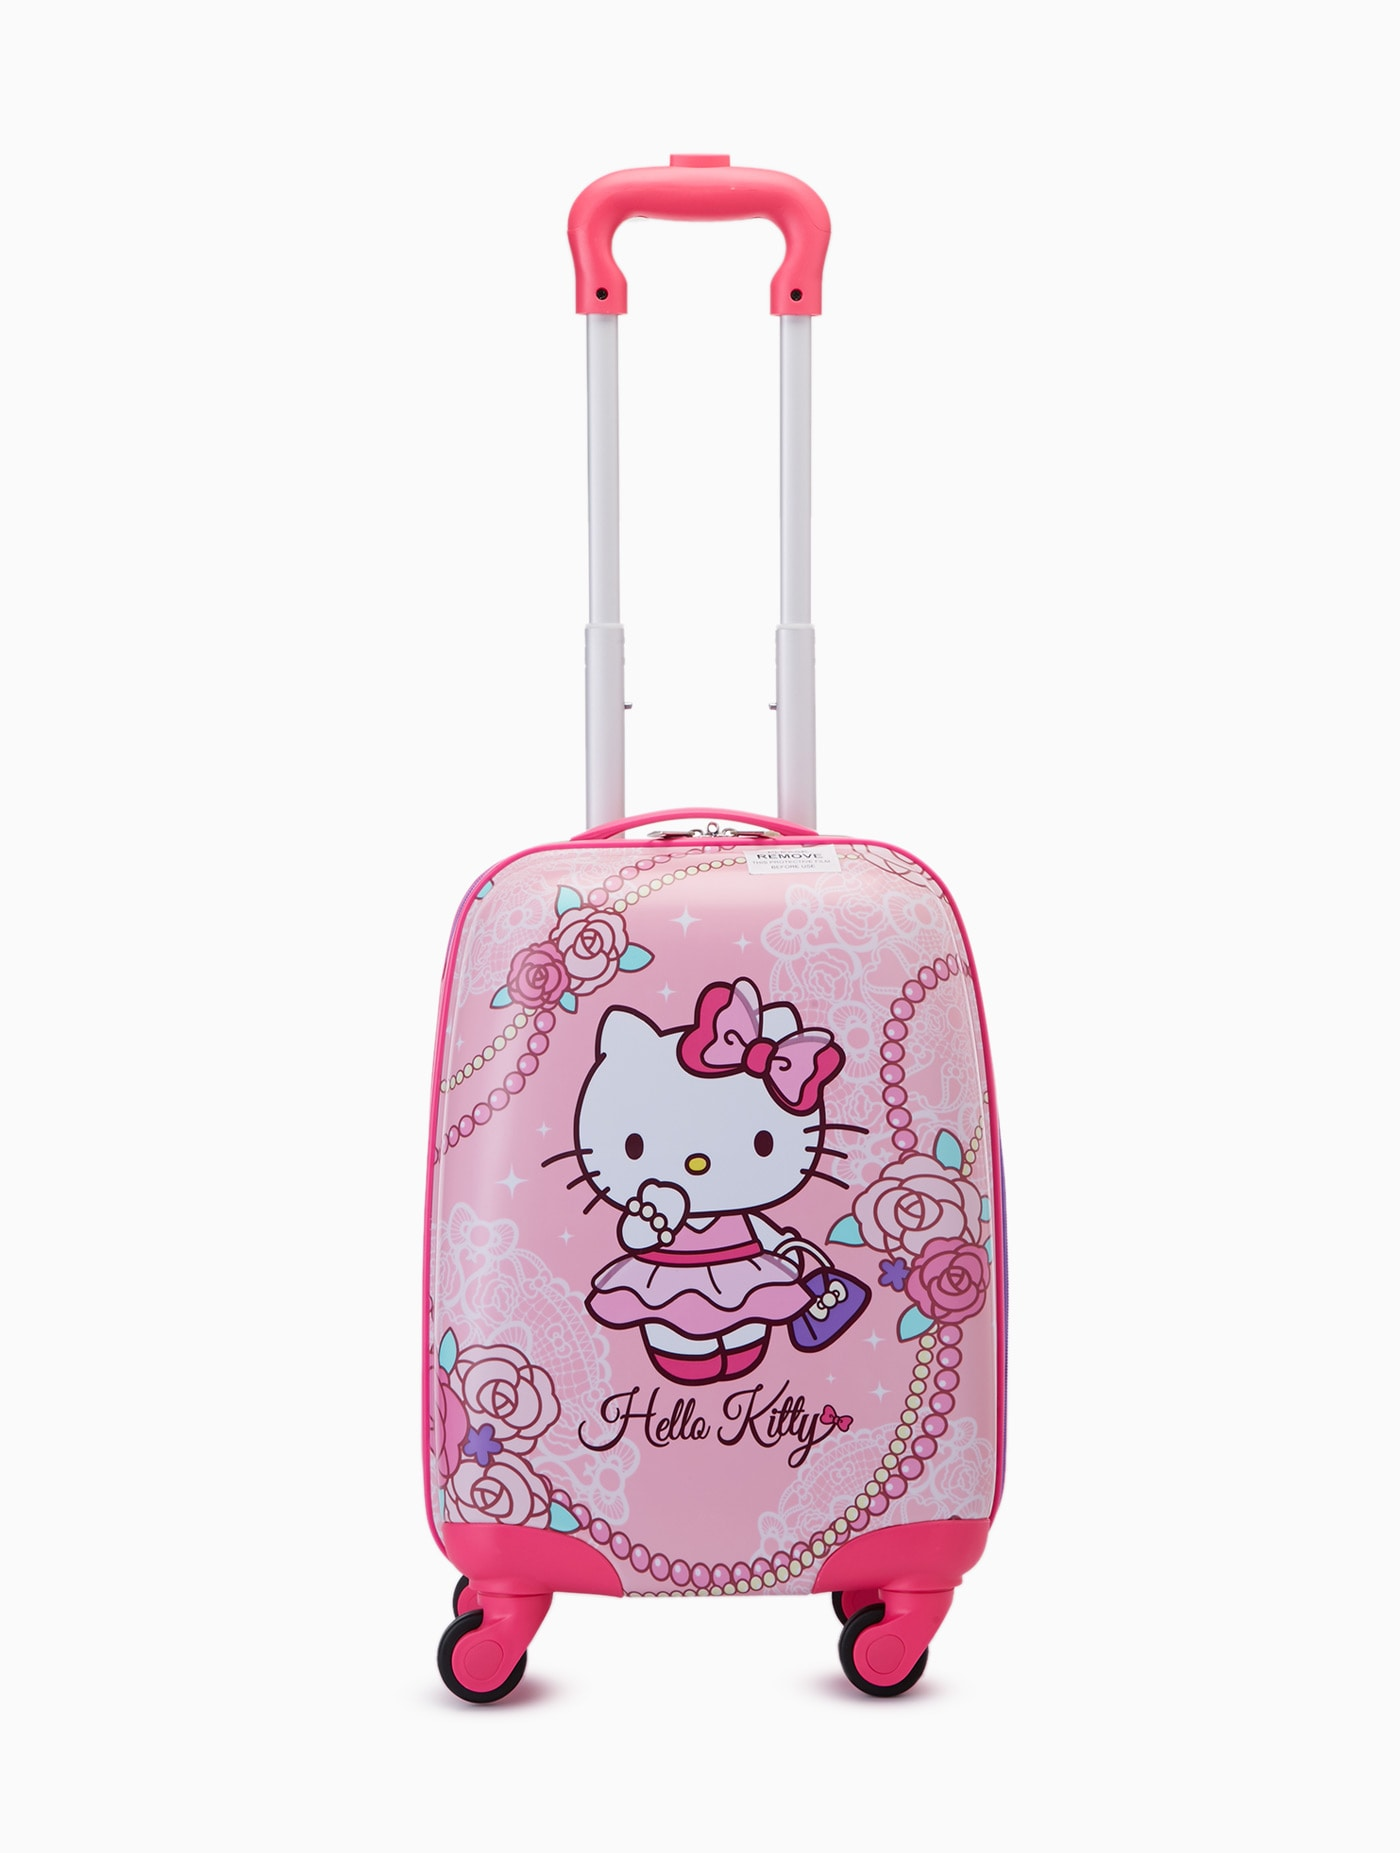 """Sanrio Hello Kitty 16/"""" inches Backpack for Kids BRAND NEW"""